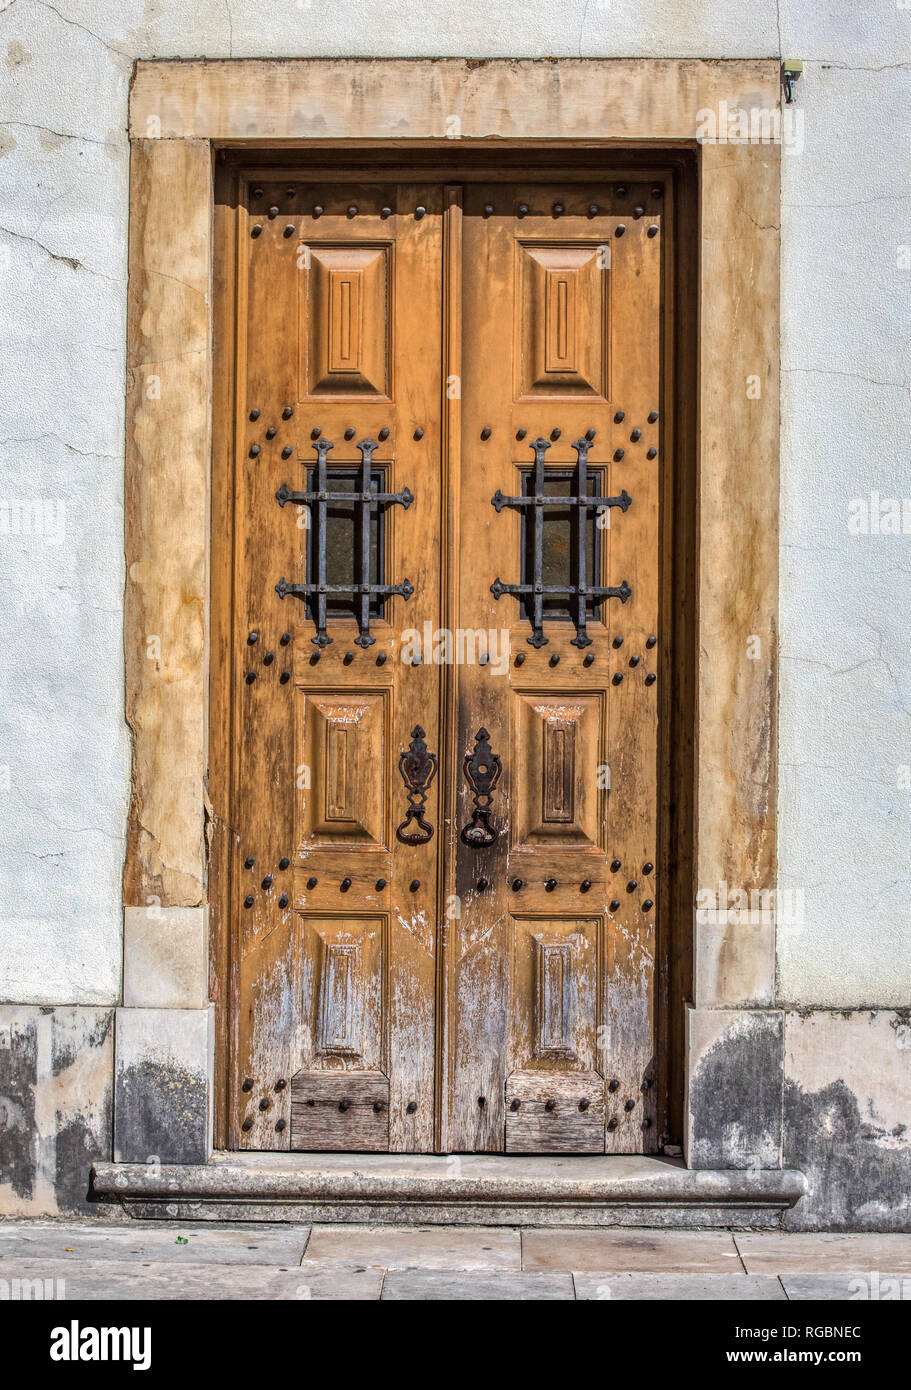 Photograph of a faded brown wood weathered castle door of medieval Portugal. Door has aged, rusted wrought iron bolts and fasteners. - Stock Image